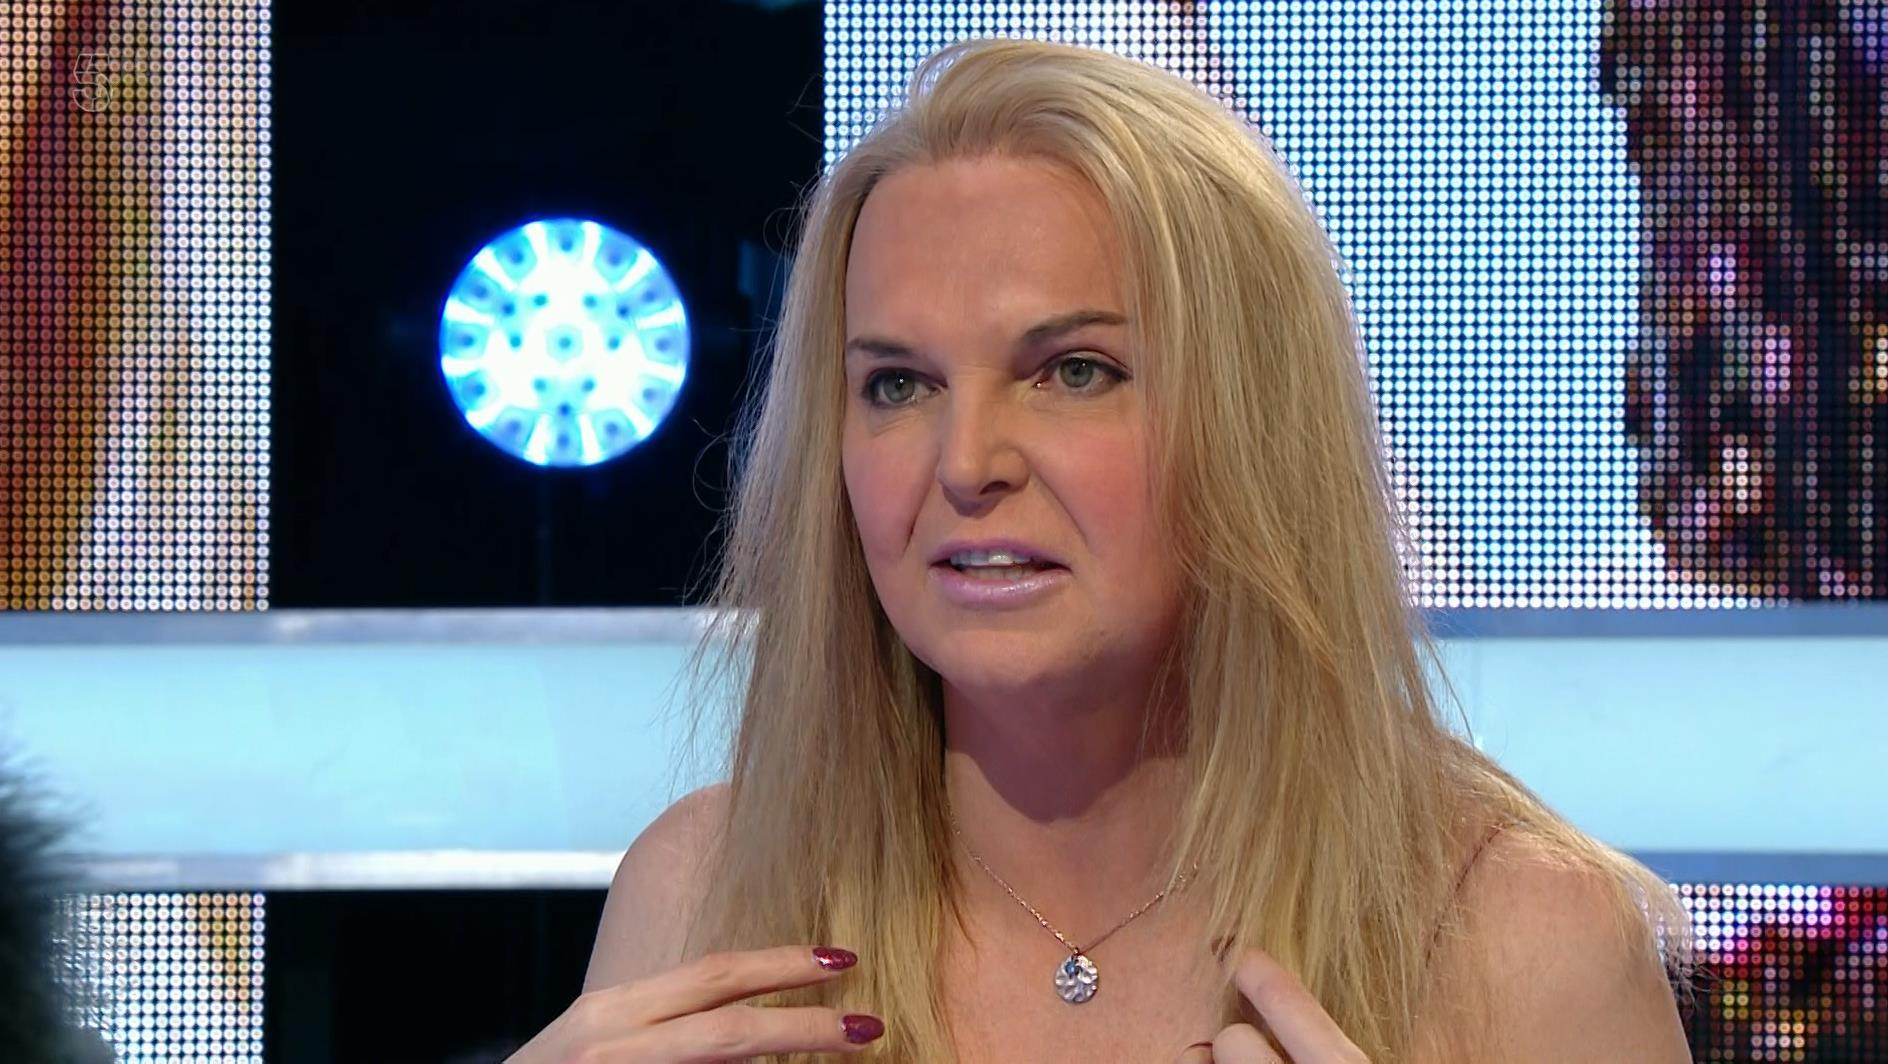 Channel 5 - Celebrity Big Brother - India Willoughby (21)